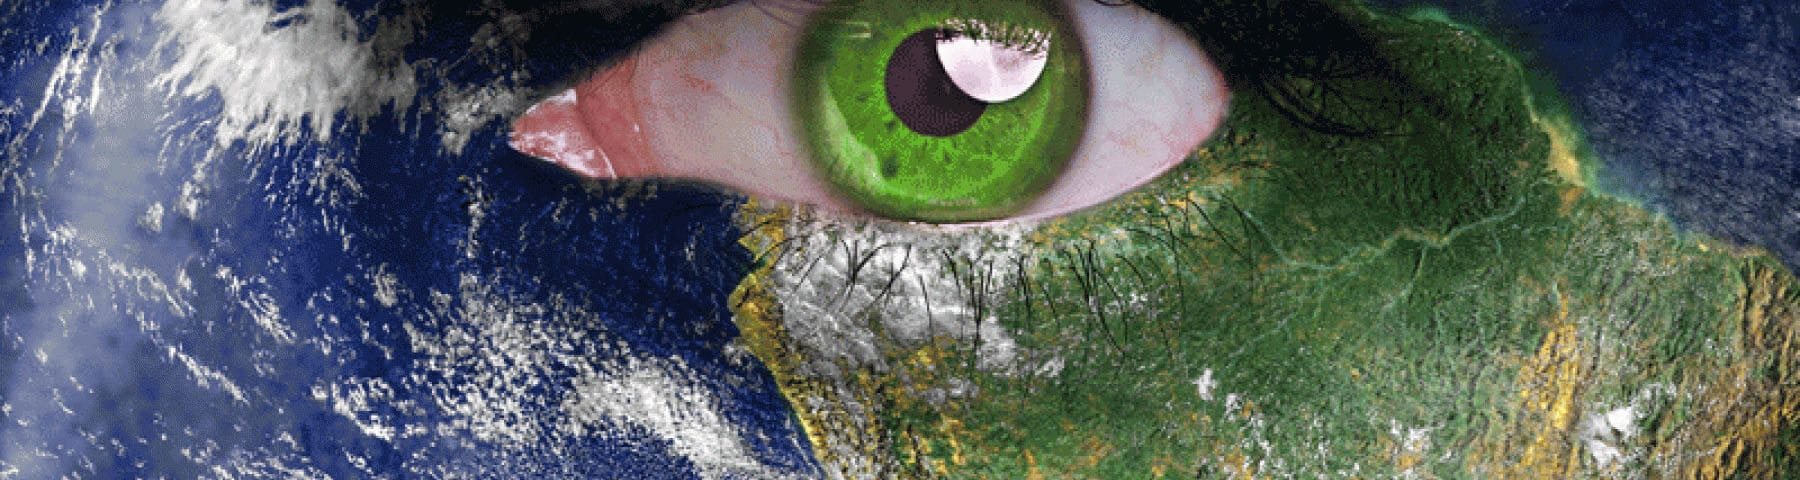 Animism Today: Engaging with a Living World